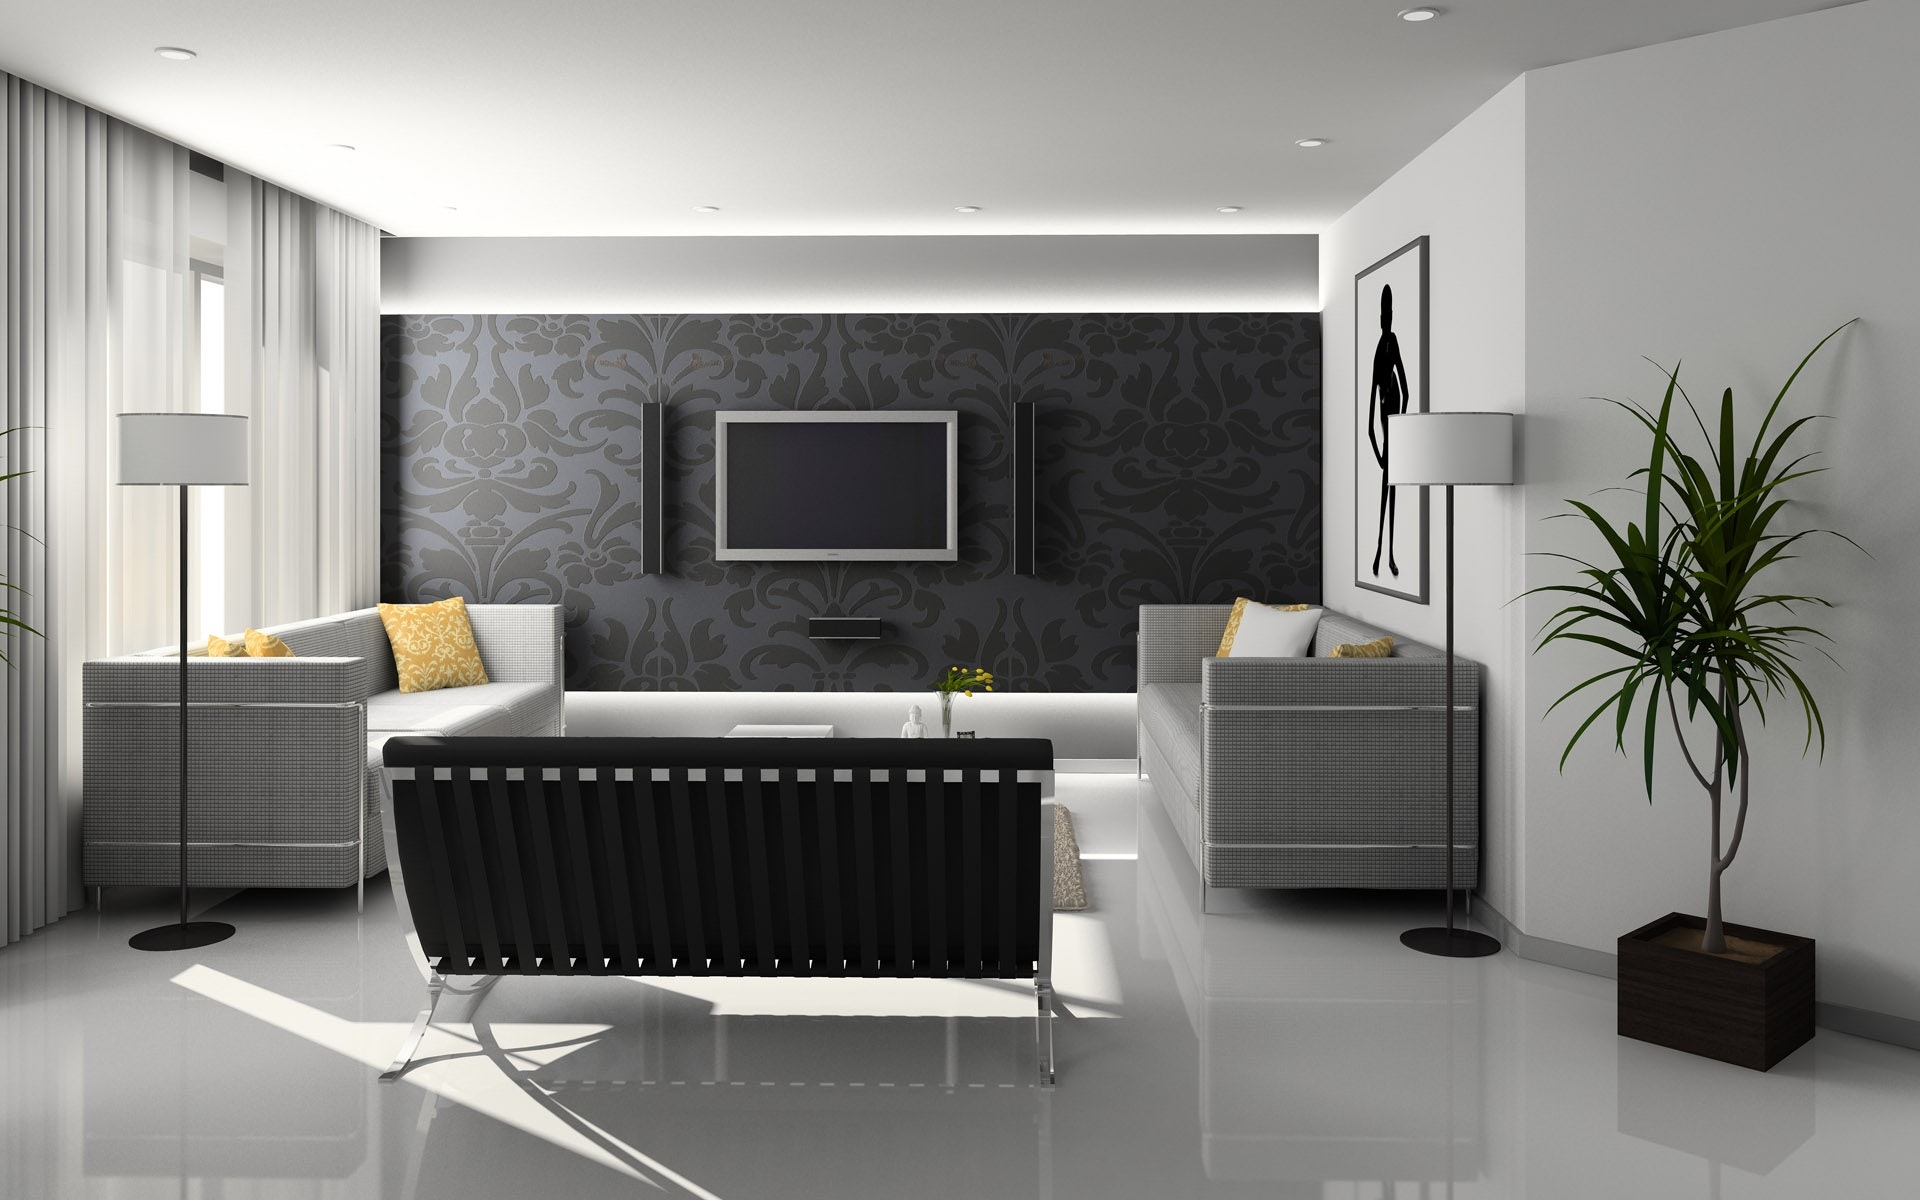 Apartment Cleaning Services Calgary